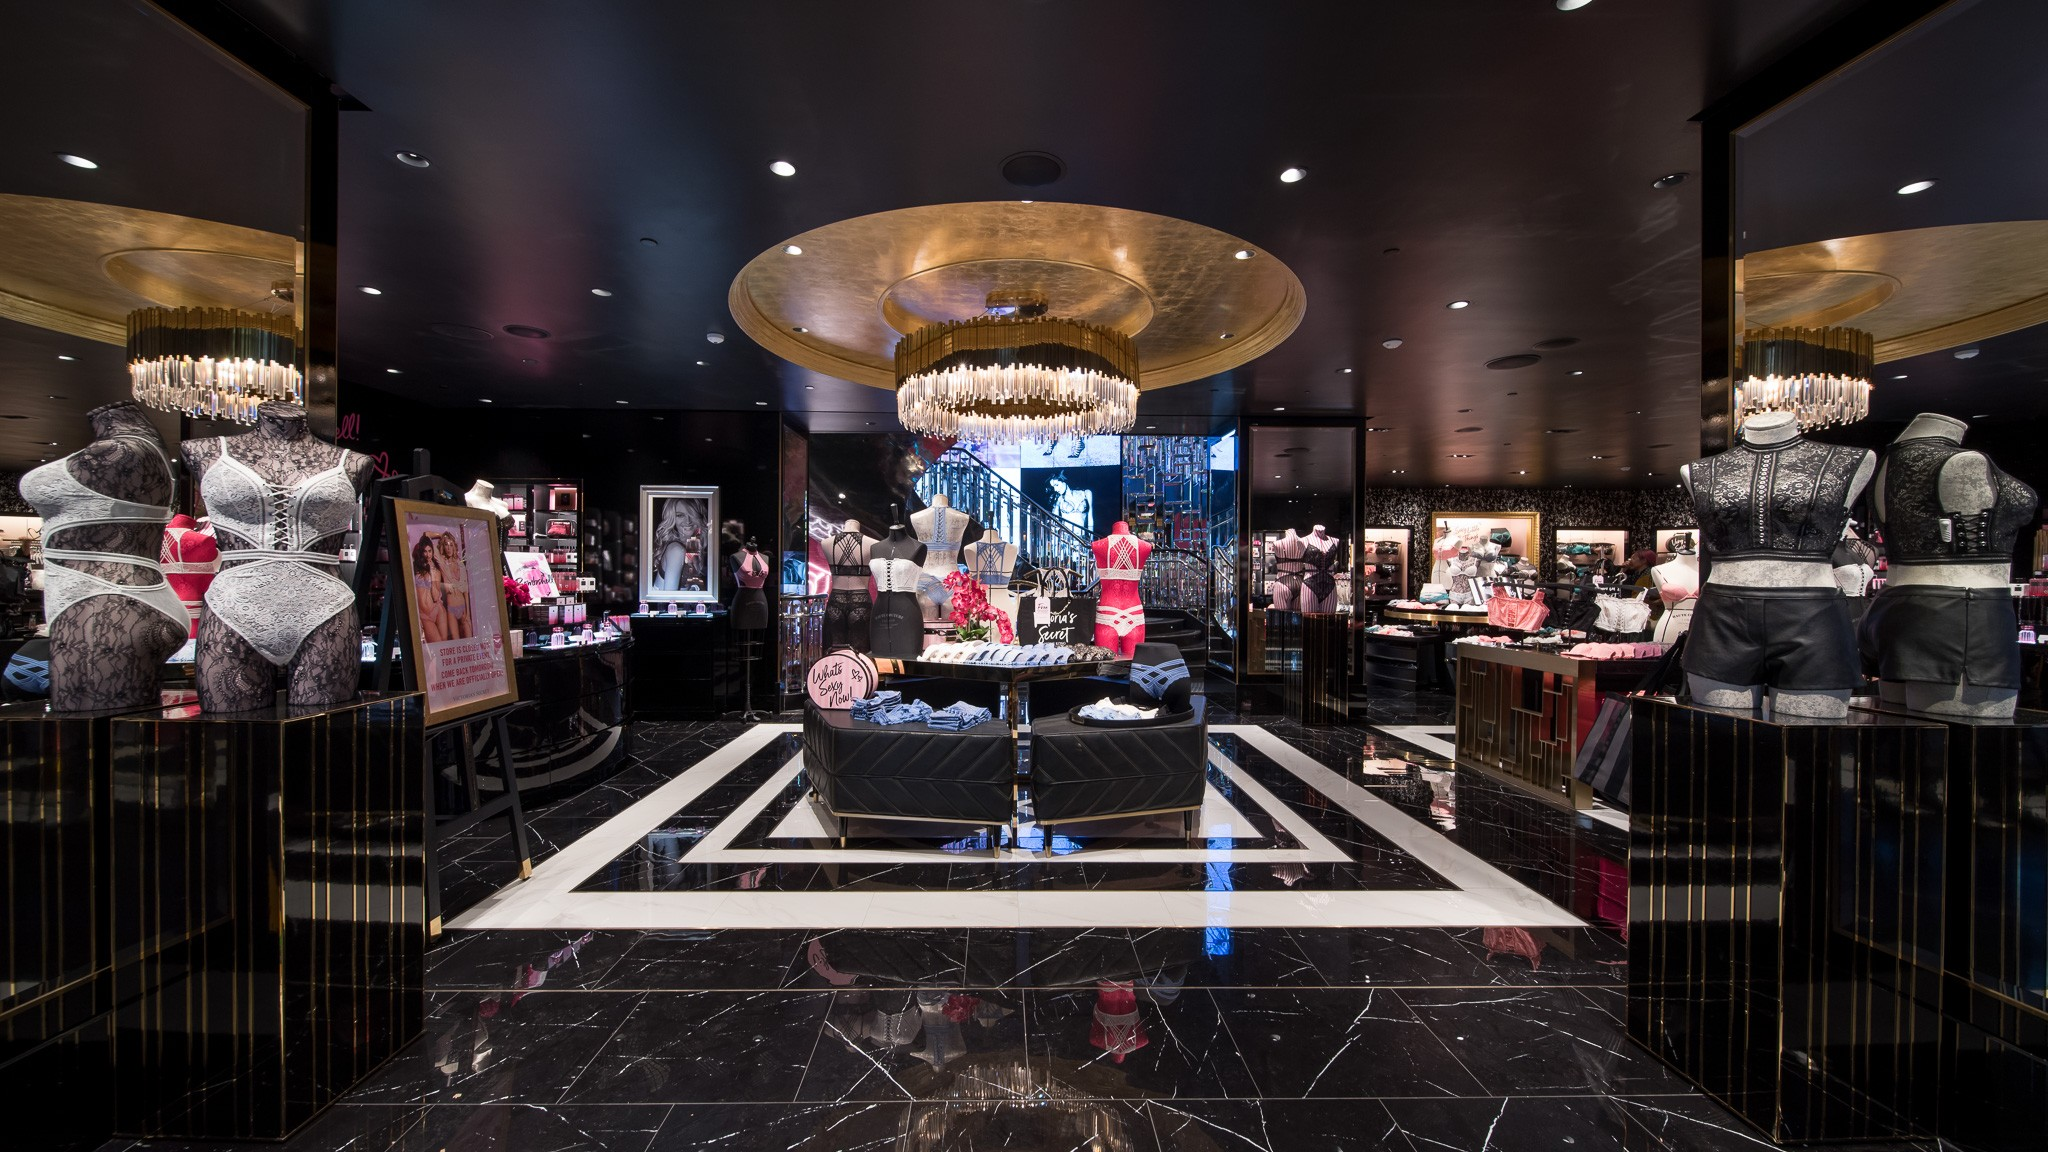 bb81609fef9e7 Victoria's Secret flagship store opens in Hong Kong | South China ...